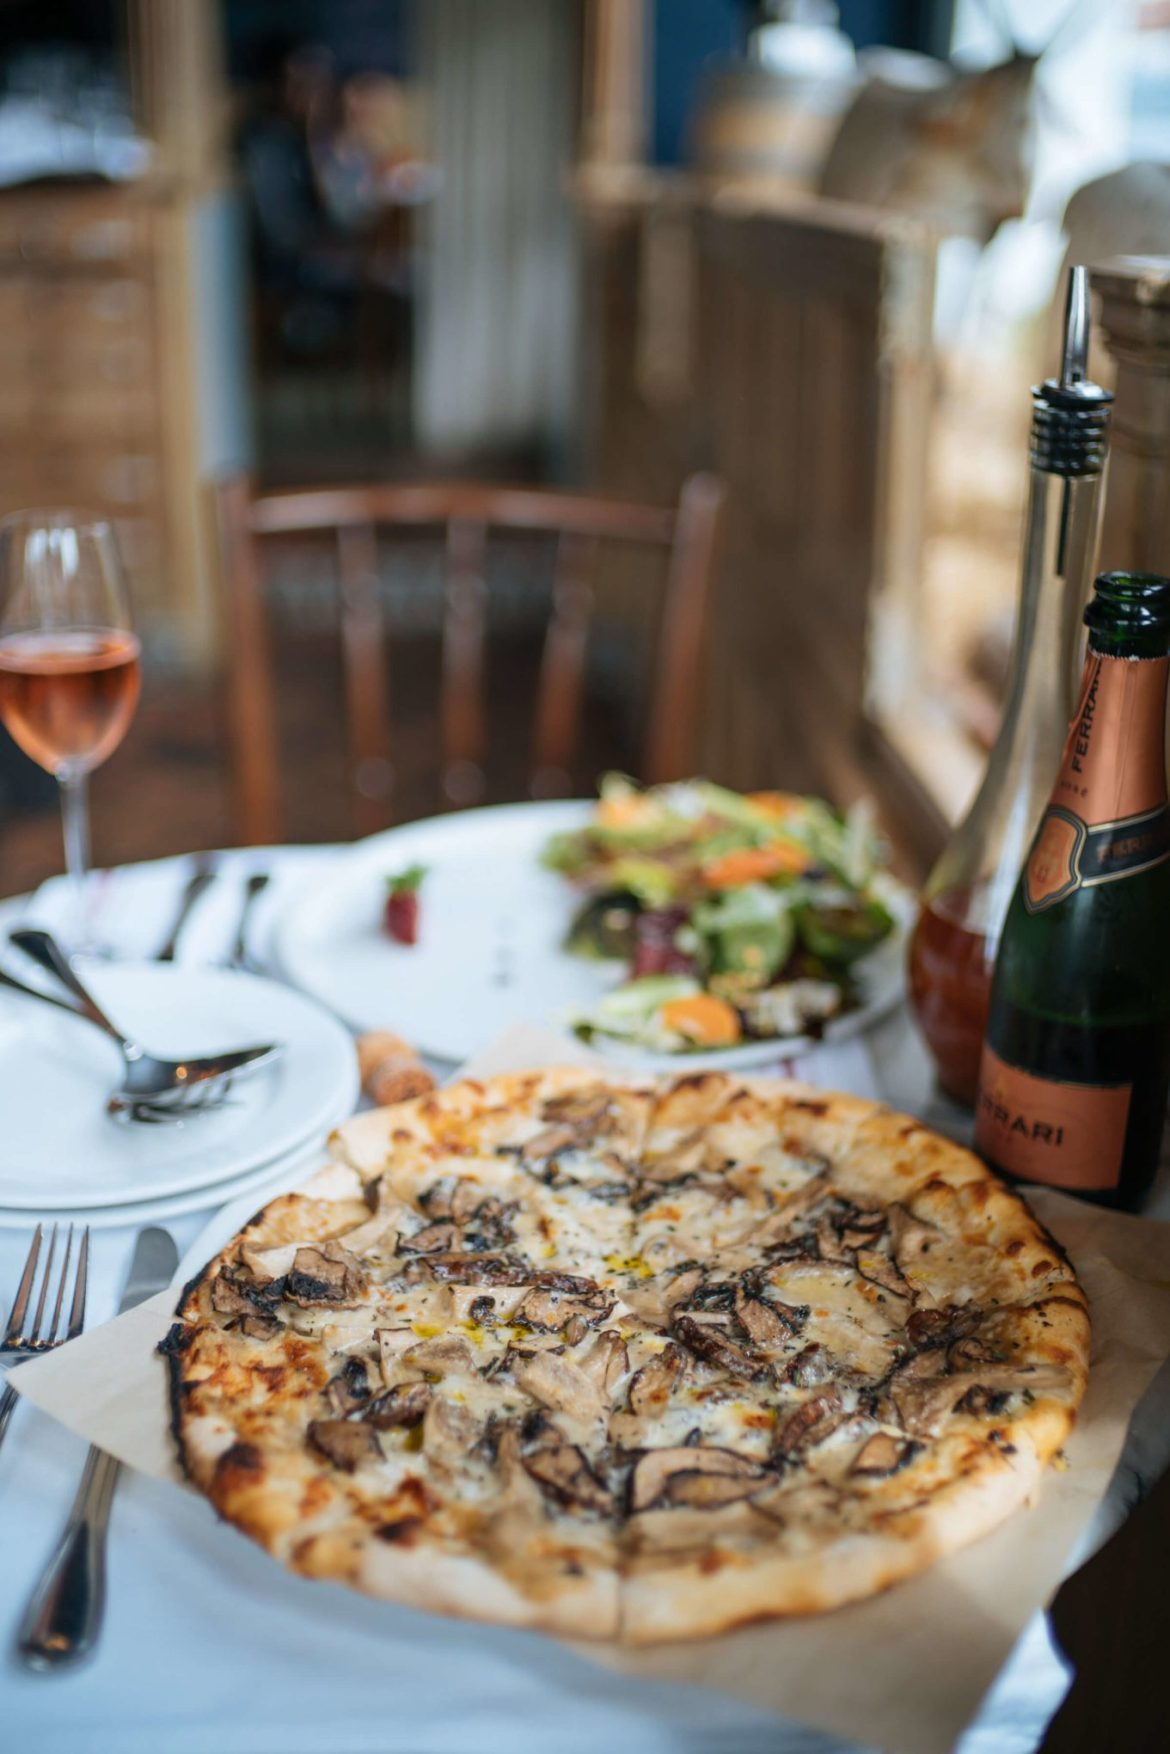 Visit La Bicyclette in Carmel By The Sea, try the wood fired pizza Champignons, made with portobello and oyster mushrooms, mozzarella, thyme, caramelized onion and truffle, thetasteedit